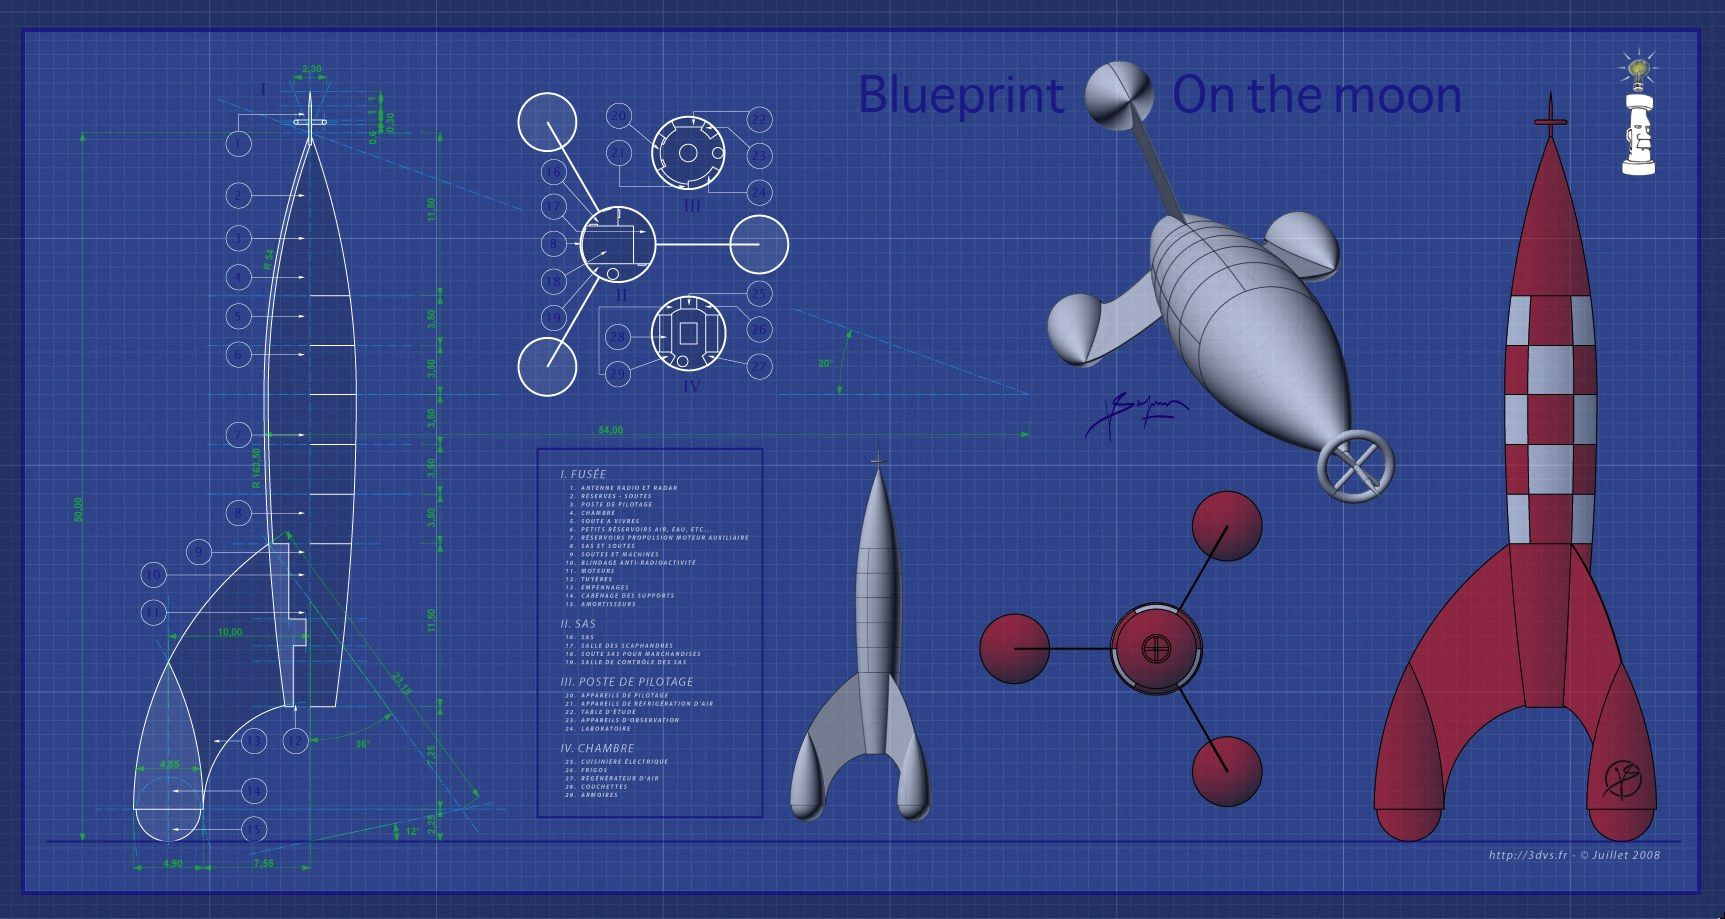 Tintin on the moon blueprint by osx59 tintin raketti tintin on the moon blueprint by osx59 malvernweather Images